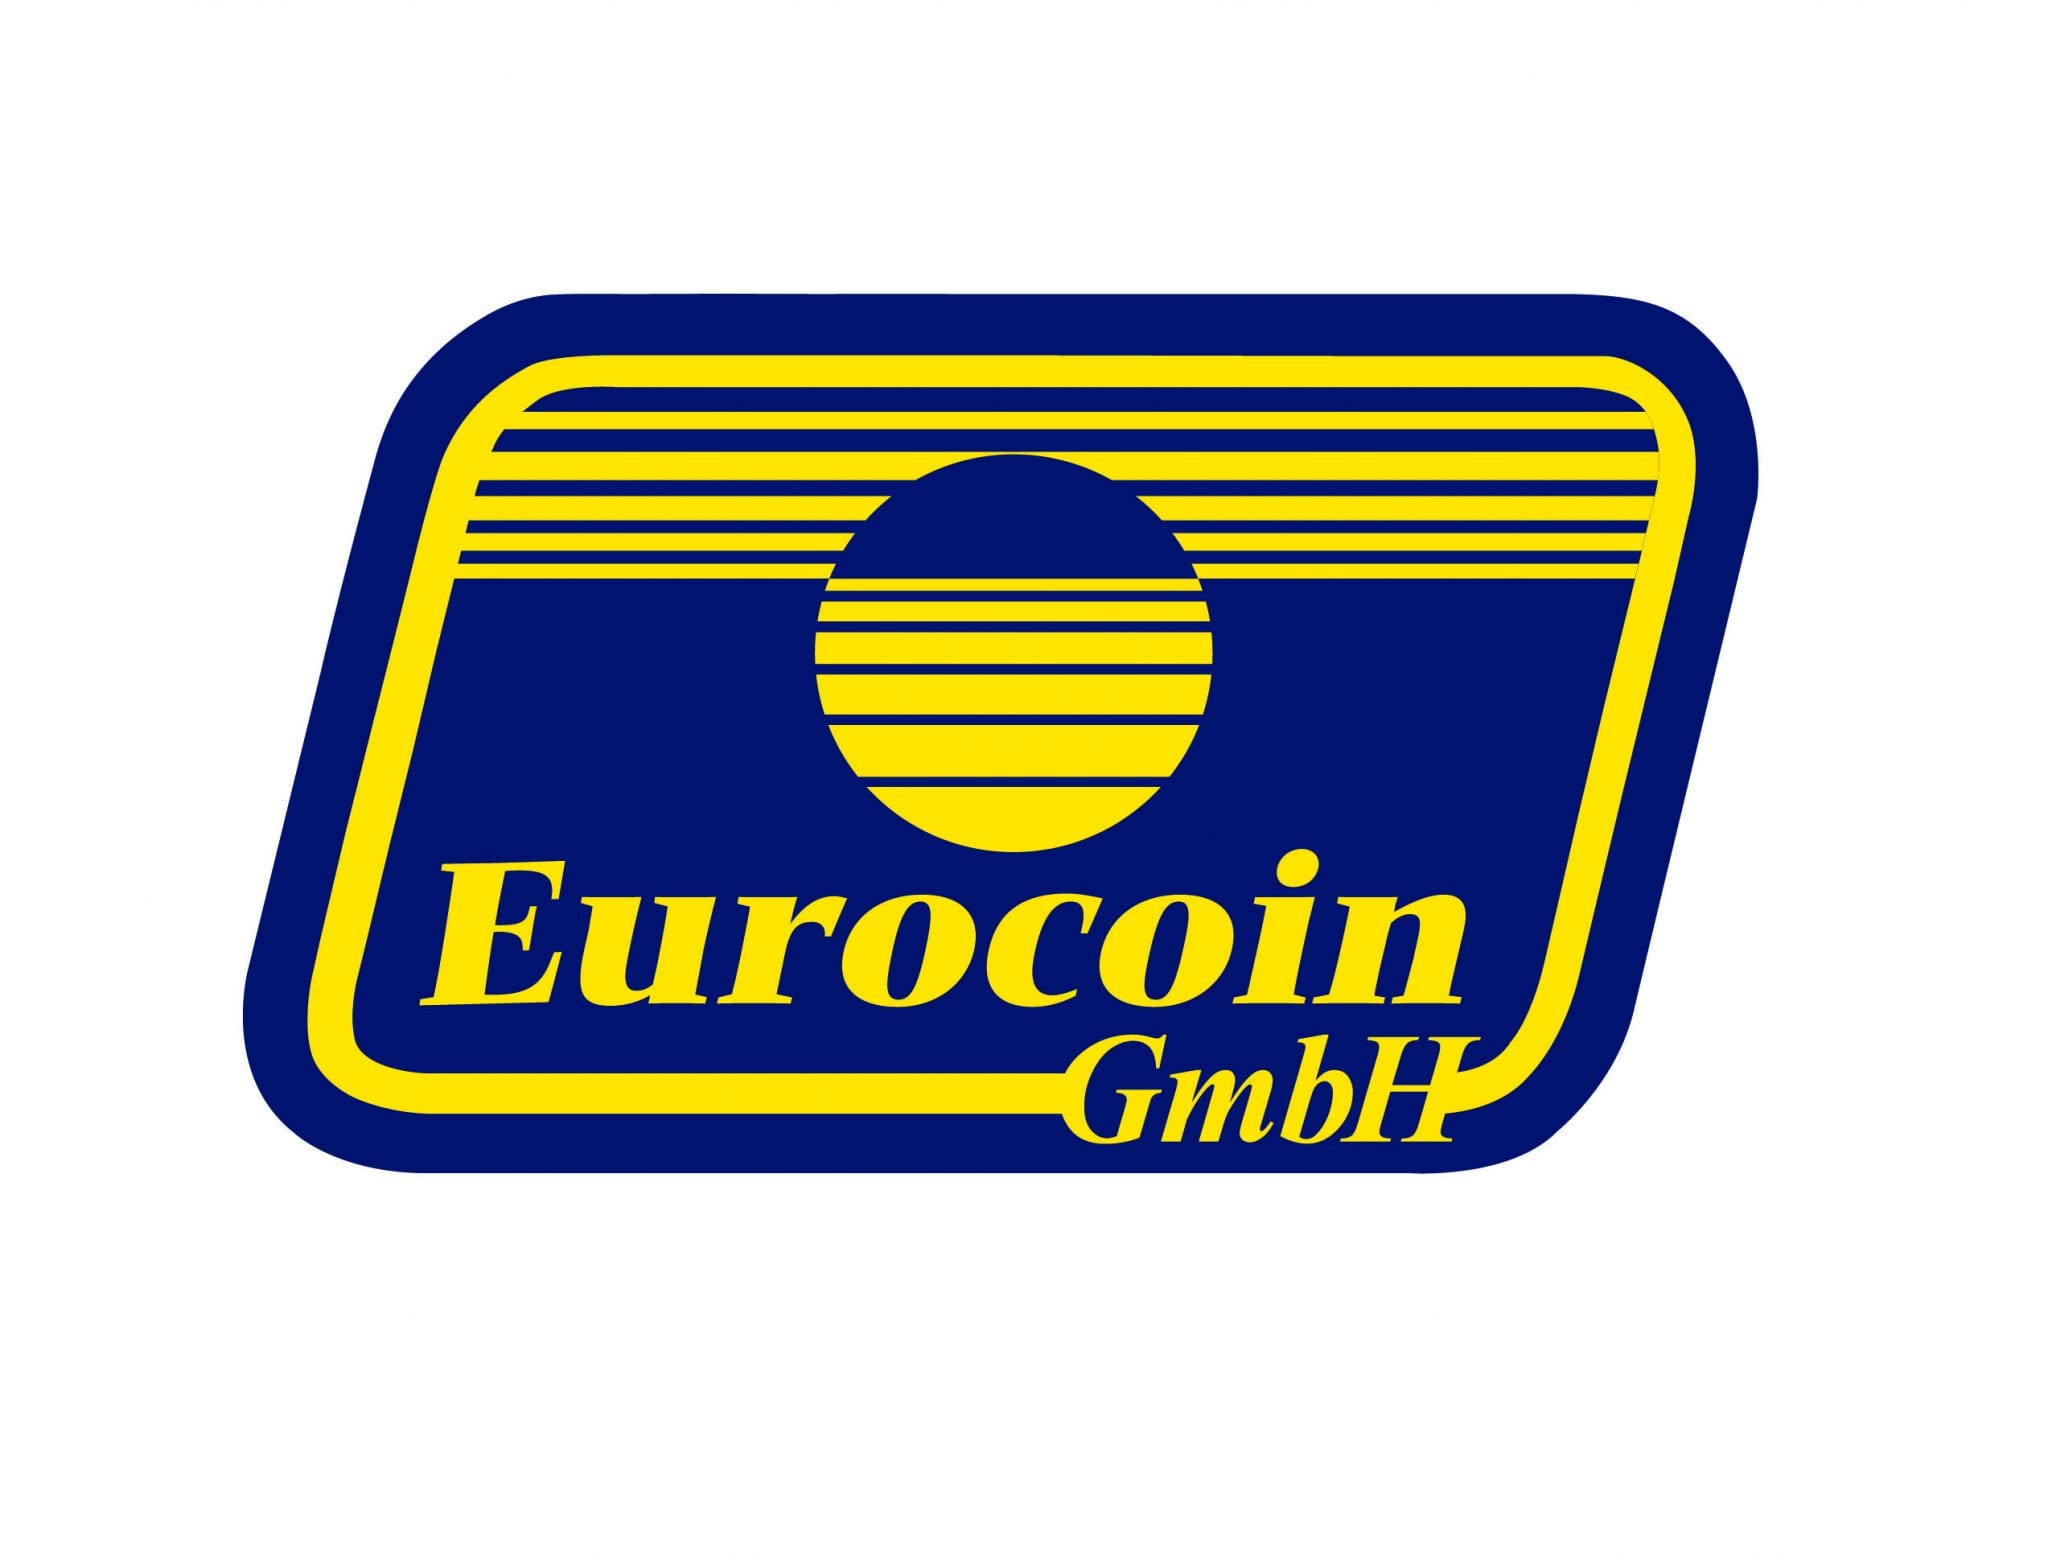 Eurocoin GmbH Germany